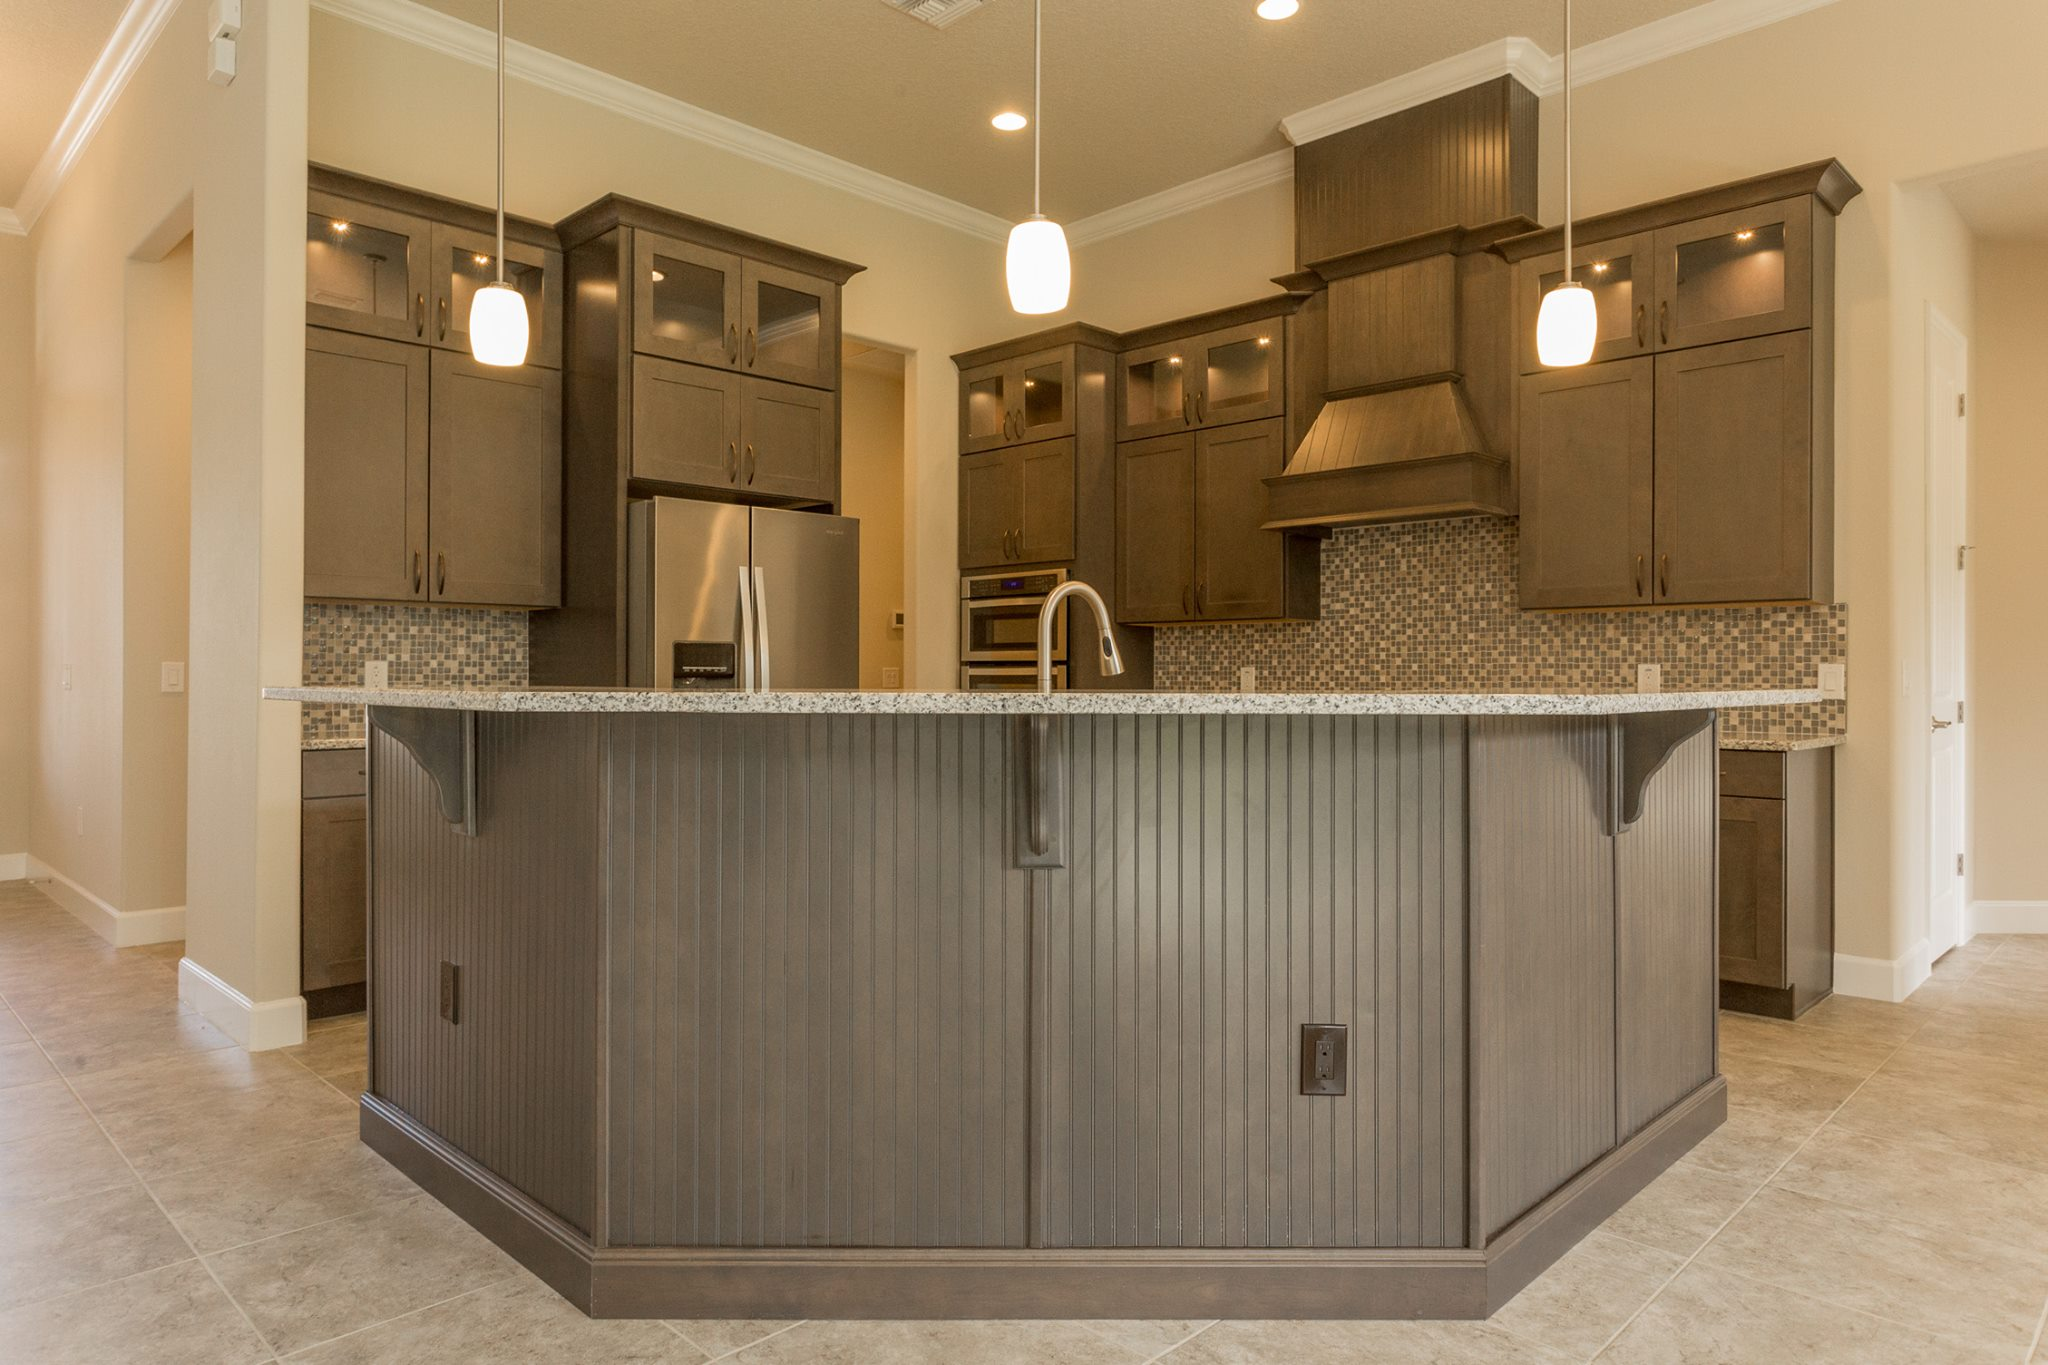 marsh kitchen cabinets cost to remodel small new melbourne home and bath with granite countertops in fl by hammond kitchens